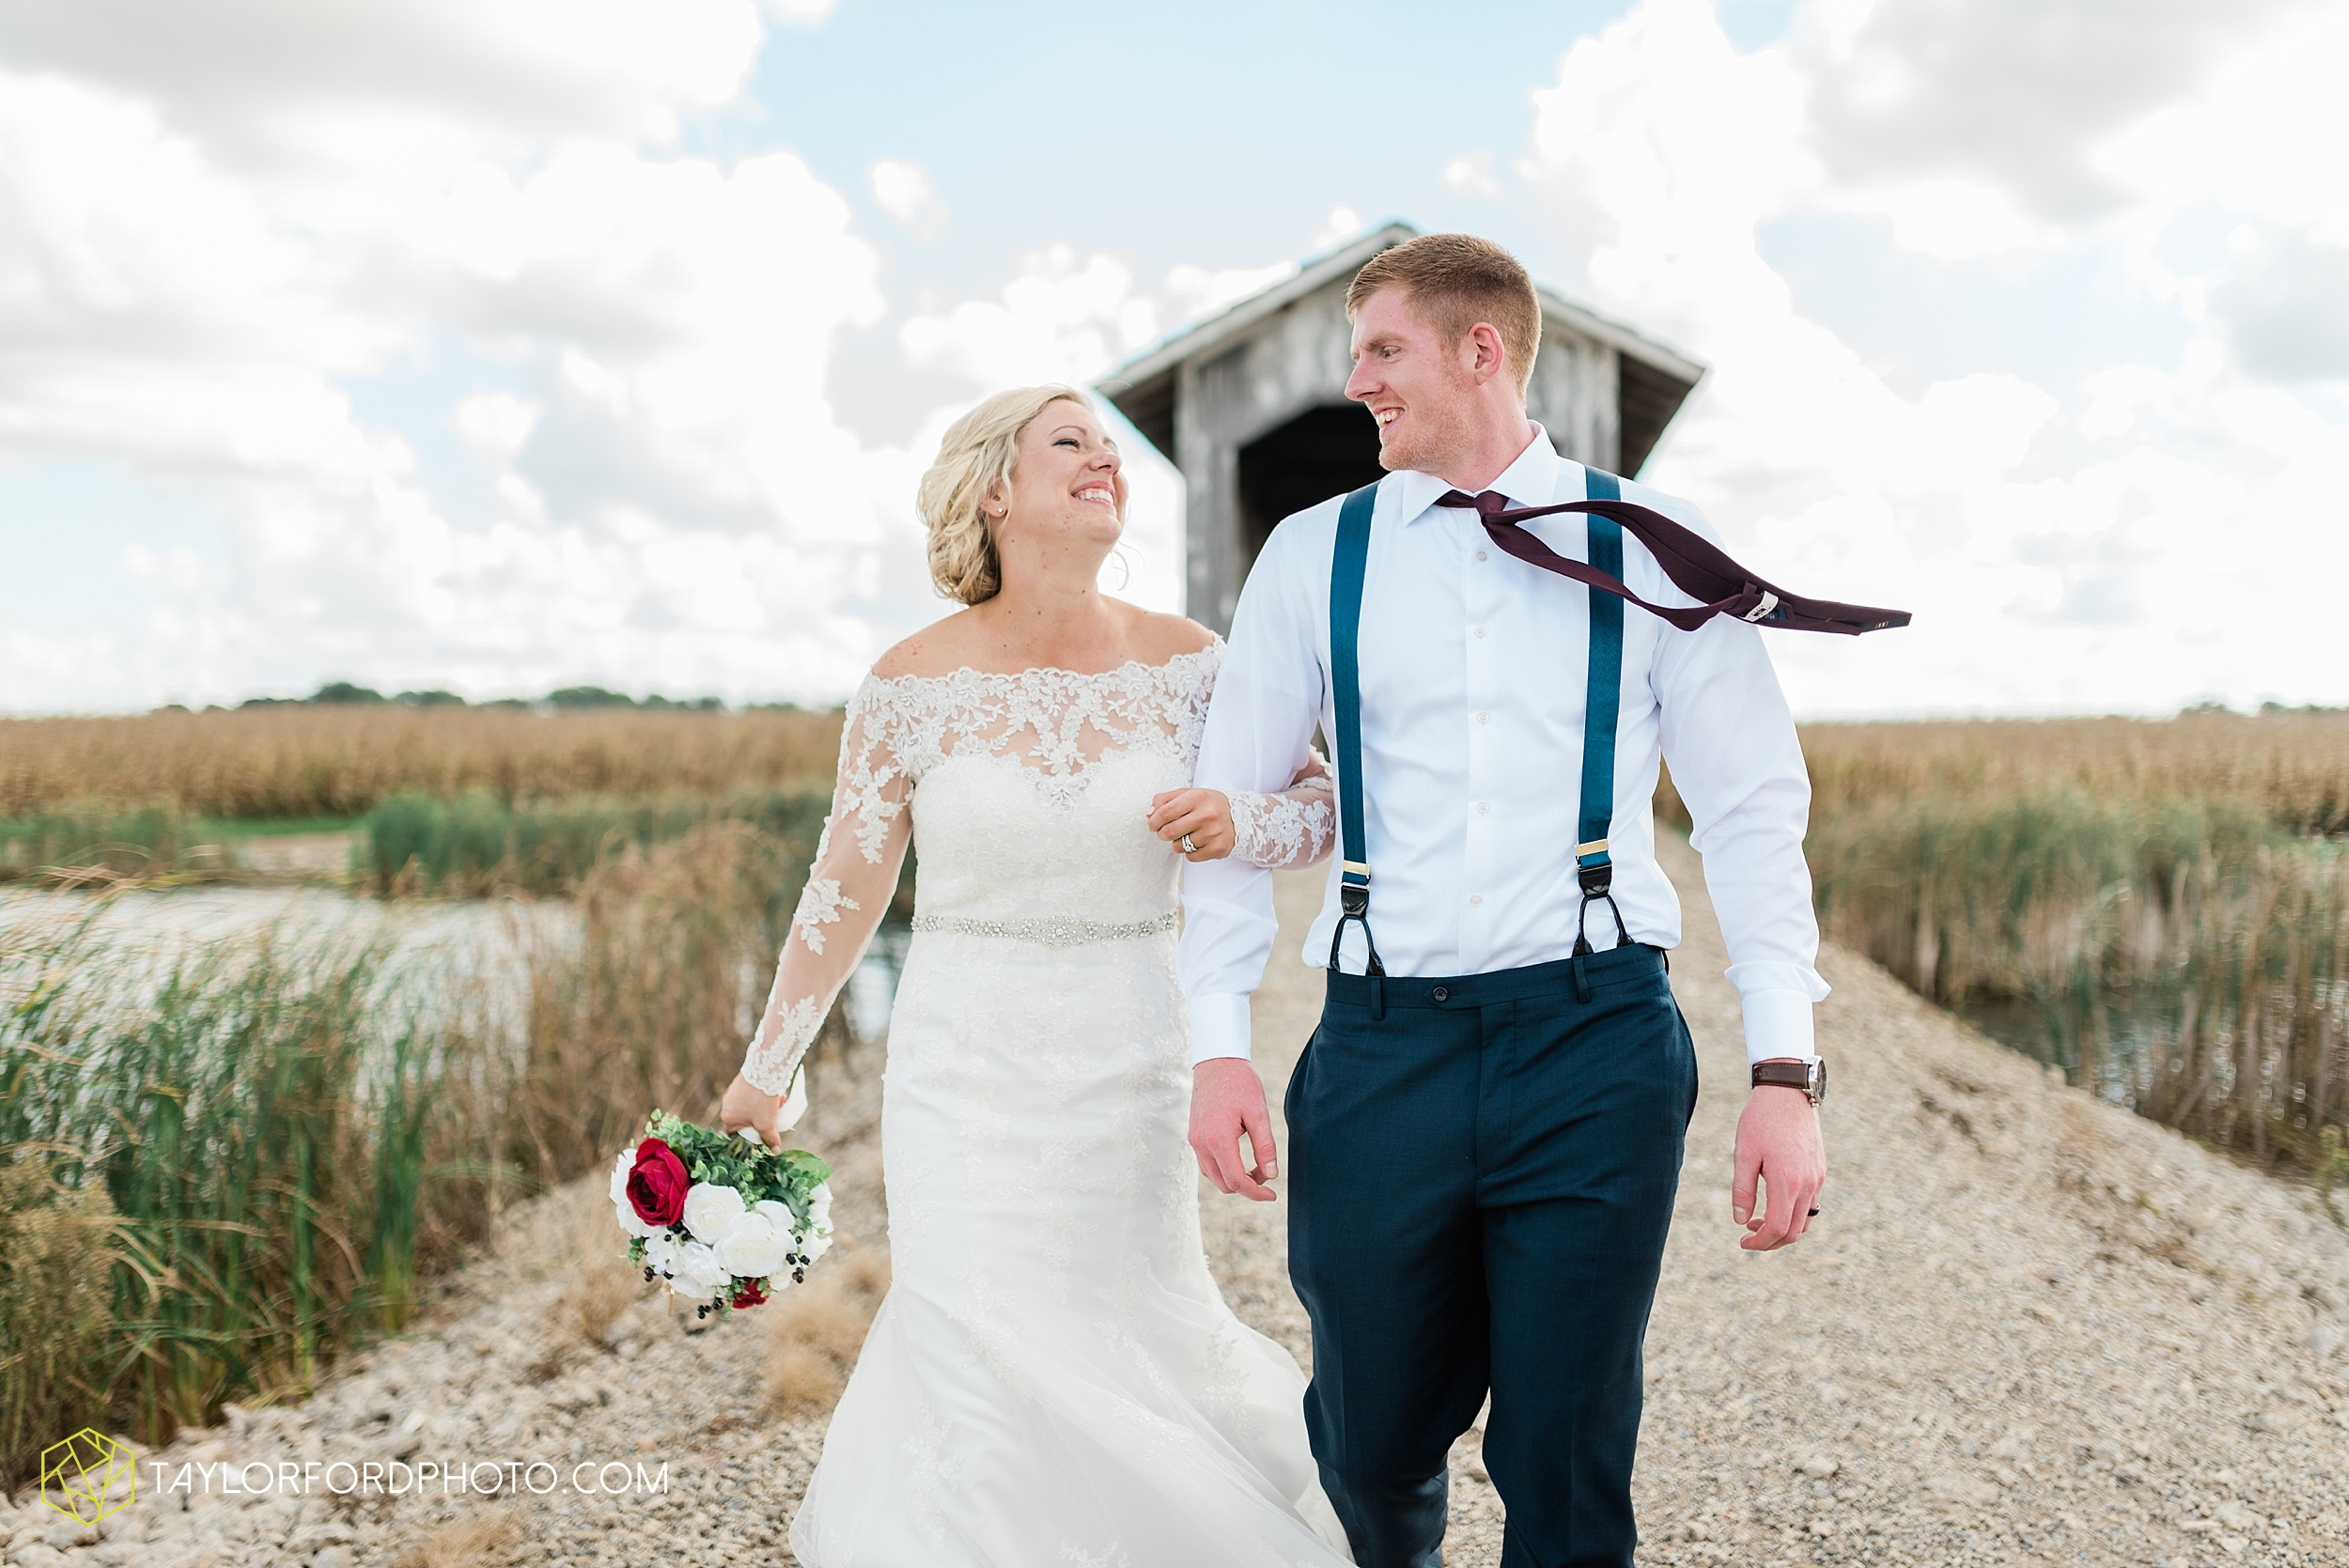 gayle-rayman-mike-steele-ottoville-ohio-wedding-immaculate-conception-parish-center-wedding-sycamore-lake-winery-wannamachers-photographer-taylor-ford-photography_0412.jpg